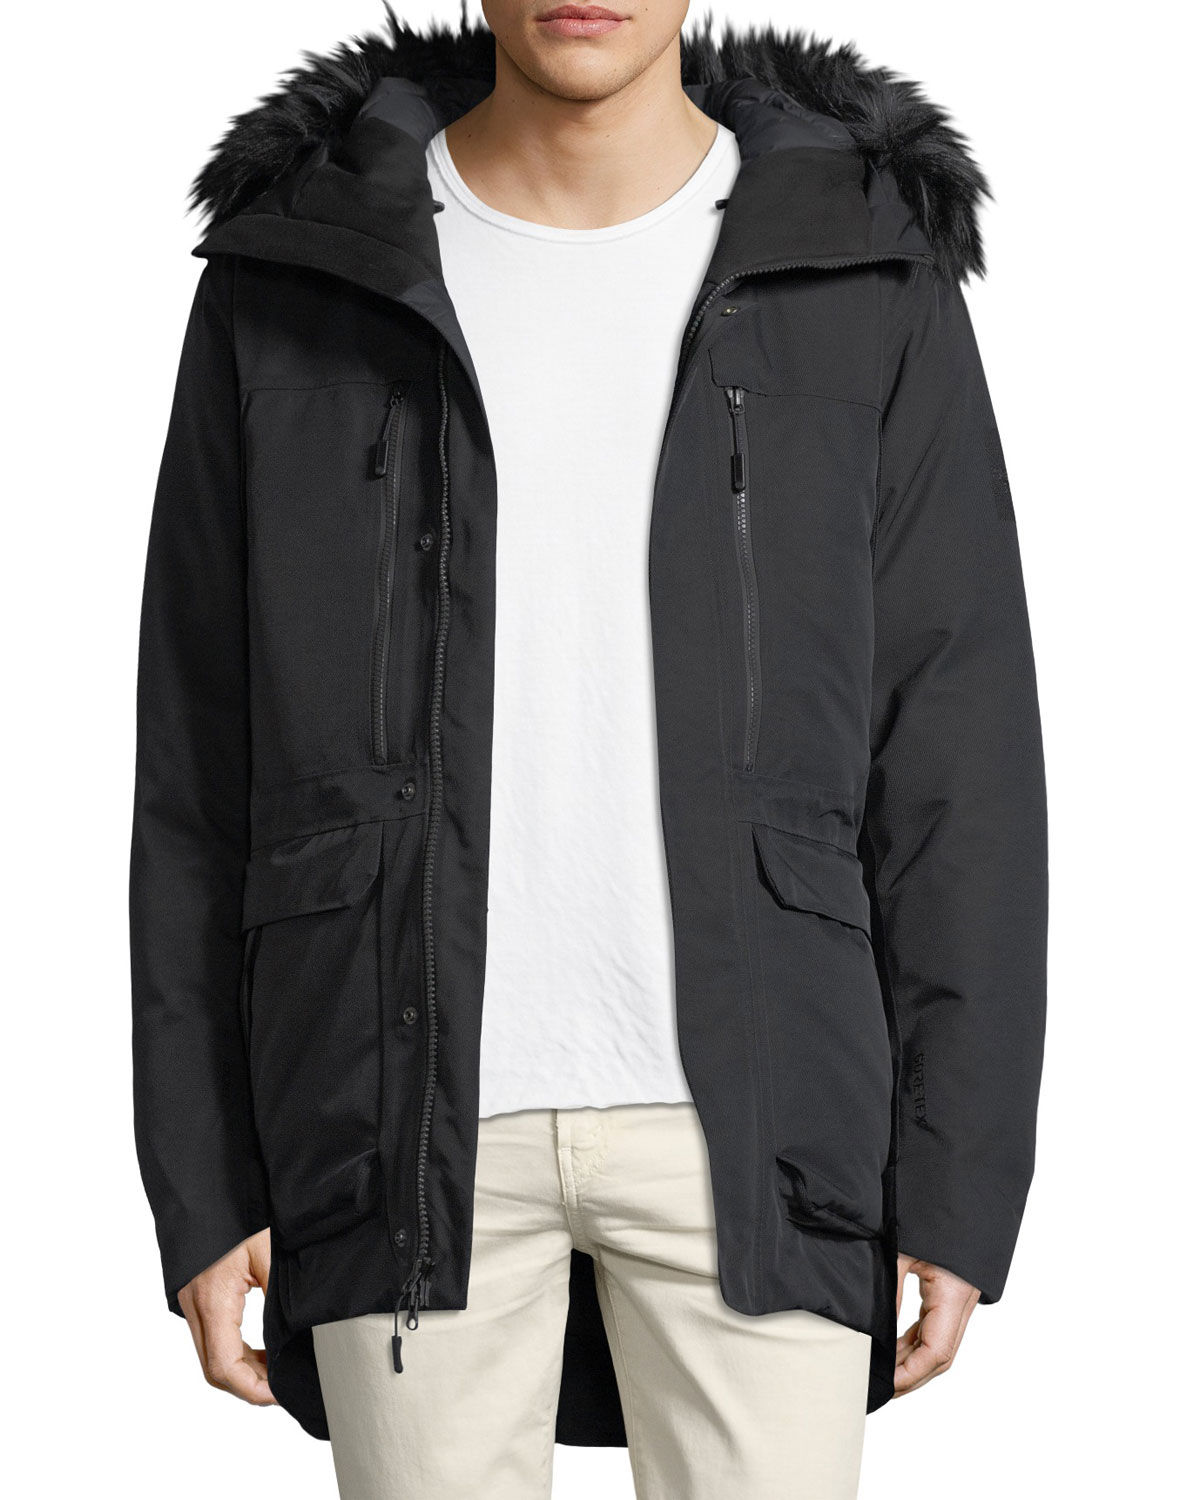 6d11123add56 The North Face Cryos Expedition GTX Parka